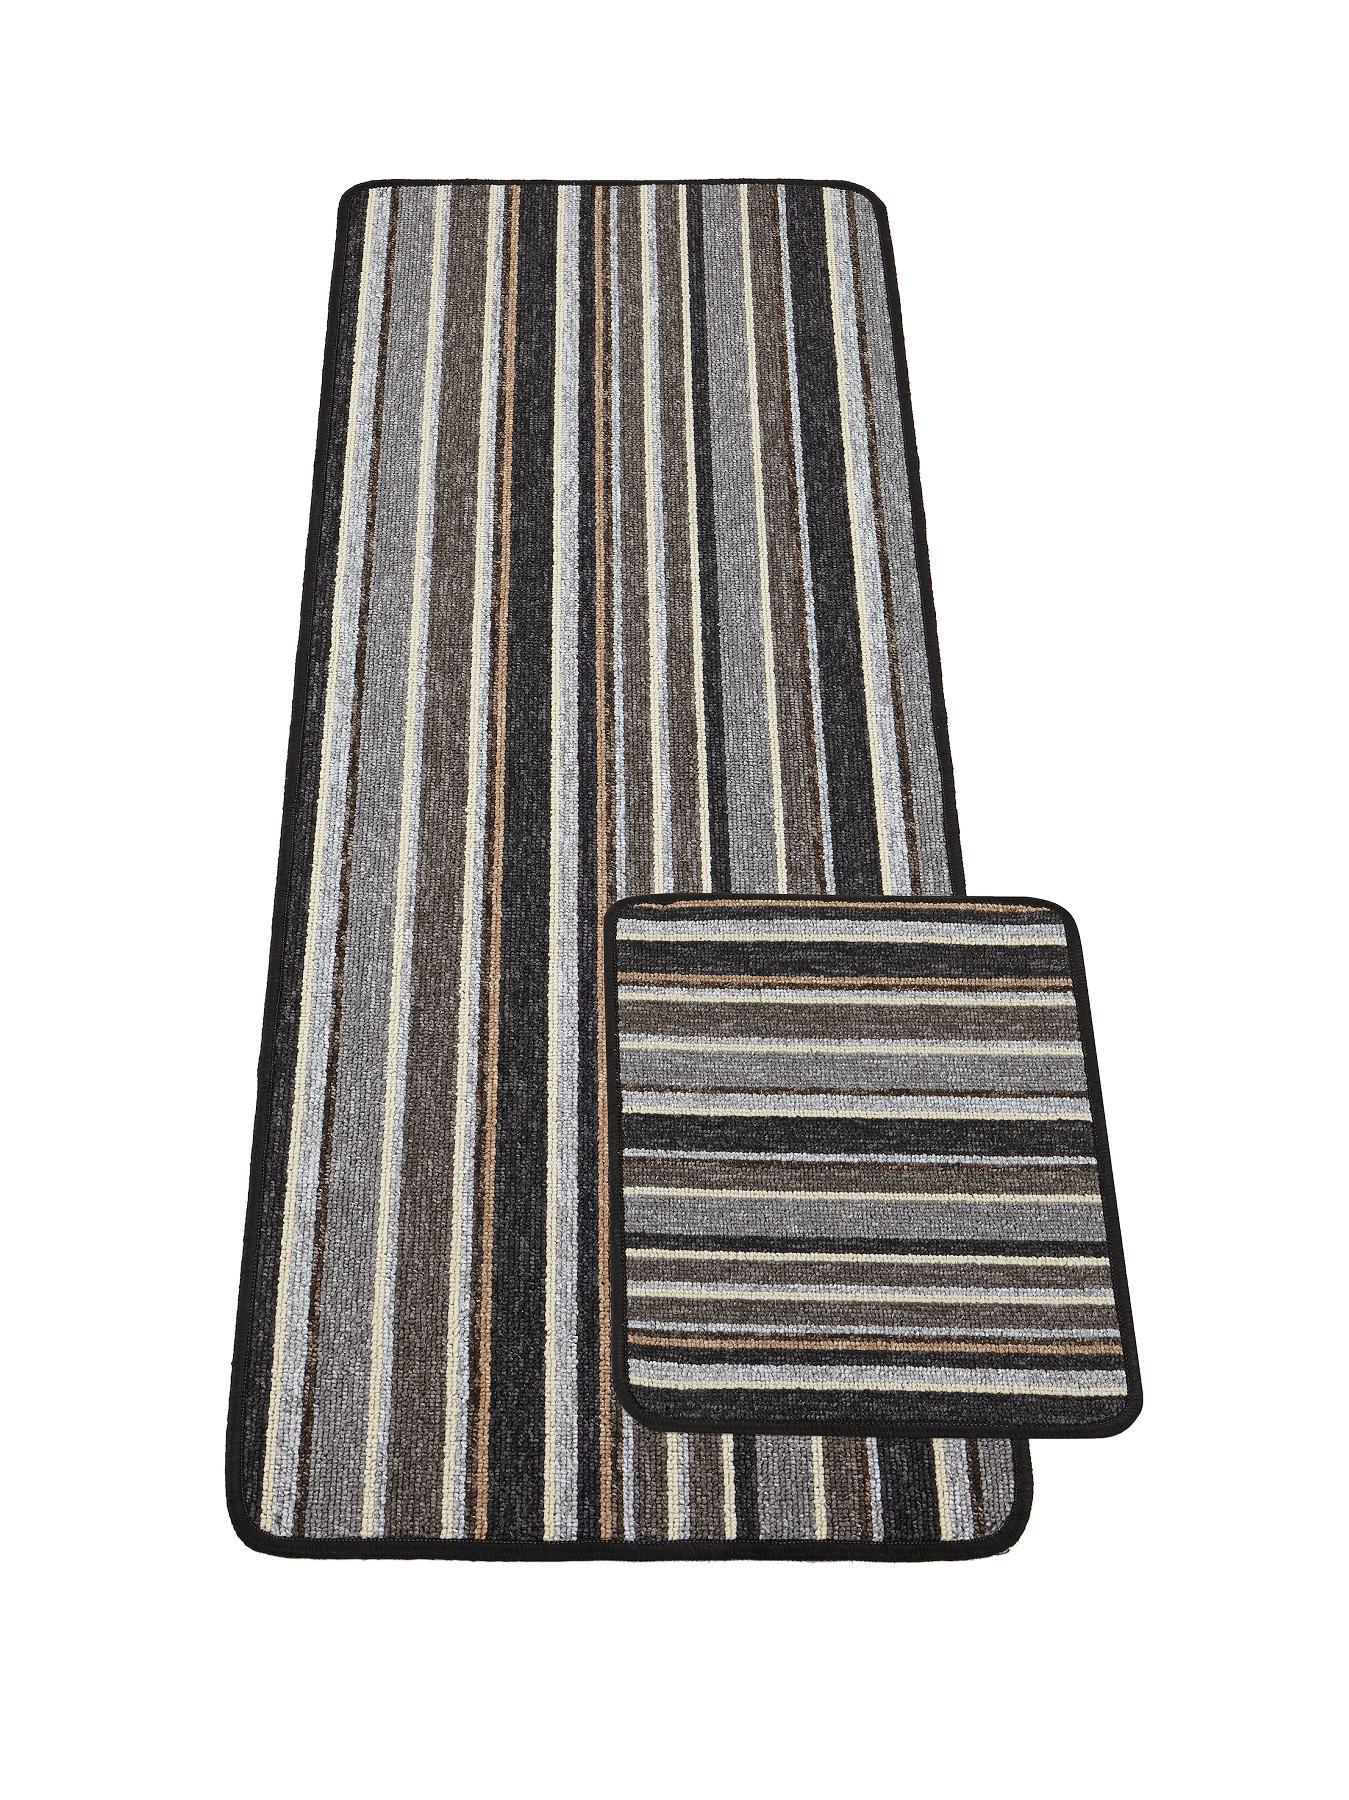 Central Utility Runner/Door Mat Set - Plum, Plum,Anthracite,Chocolate,Red